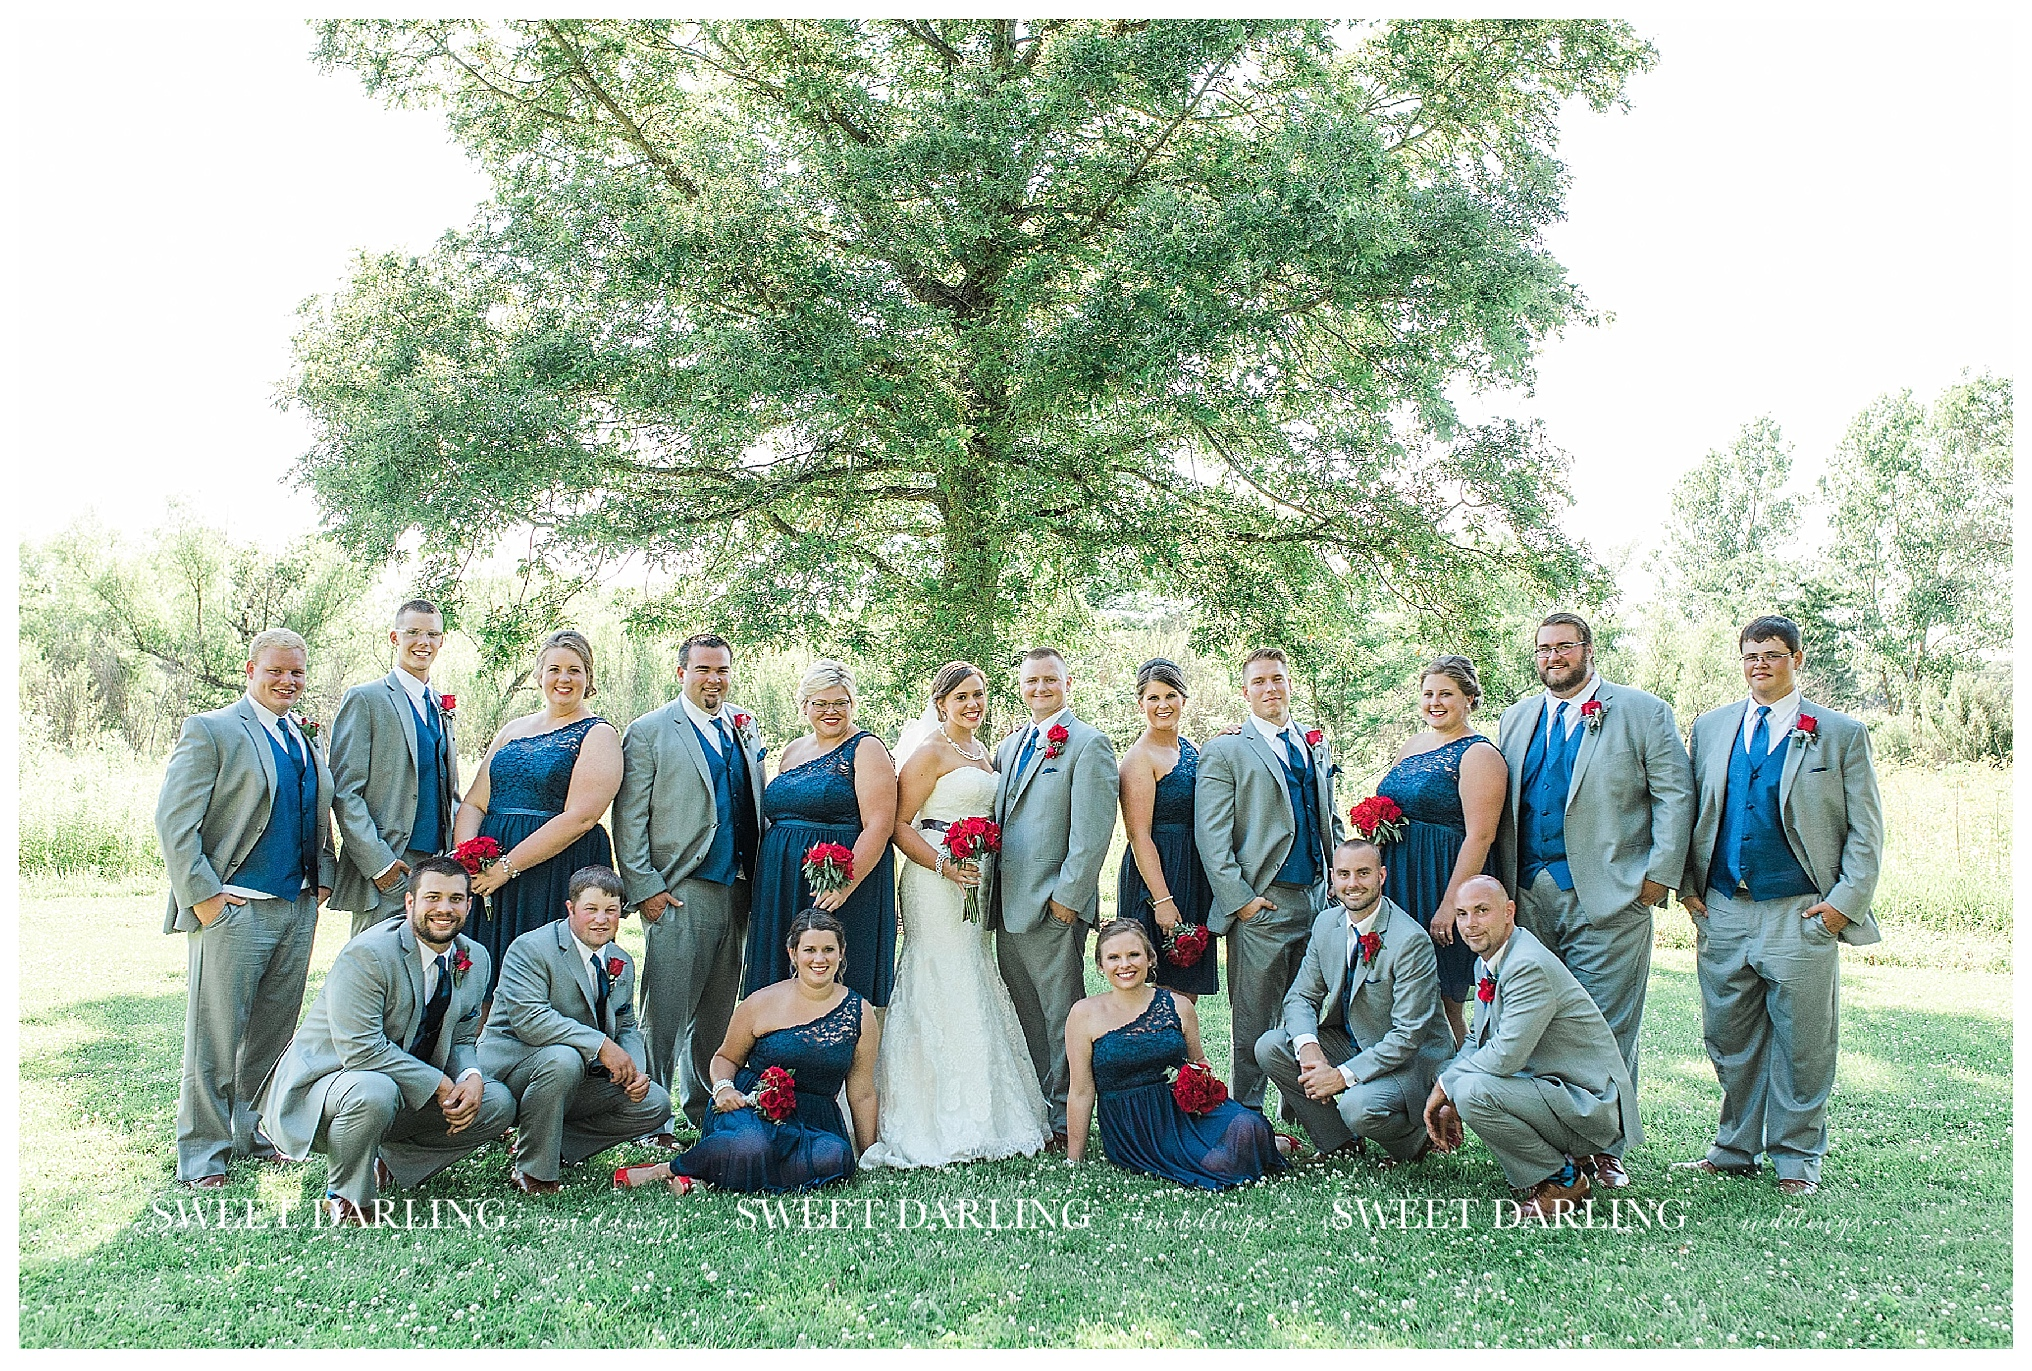 champaign-county-royal-paxton-illinois-sweet-darling-weddings-photography-red-navy-roses_1410.jpg